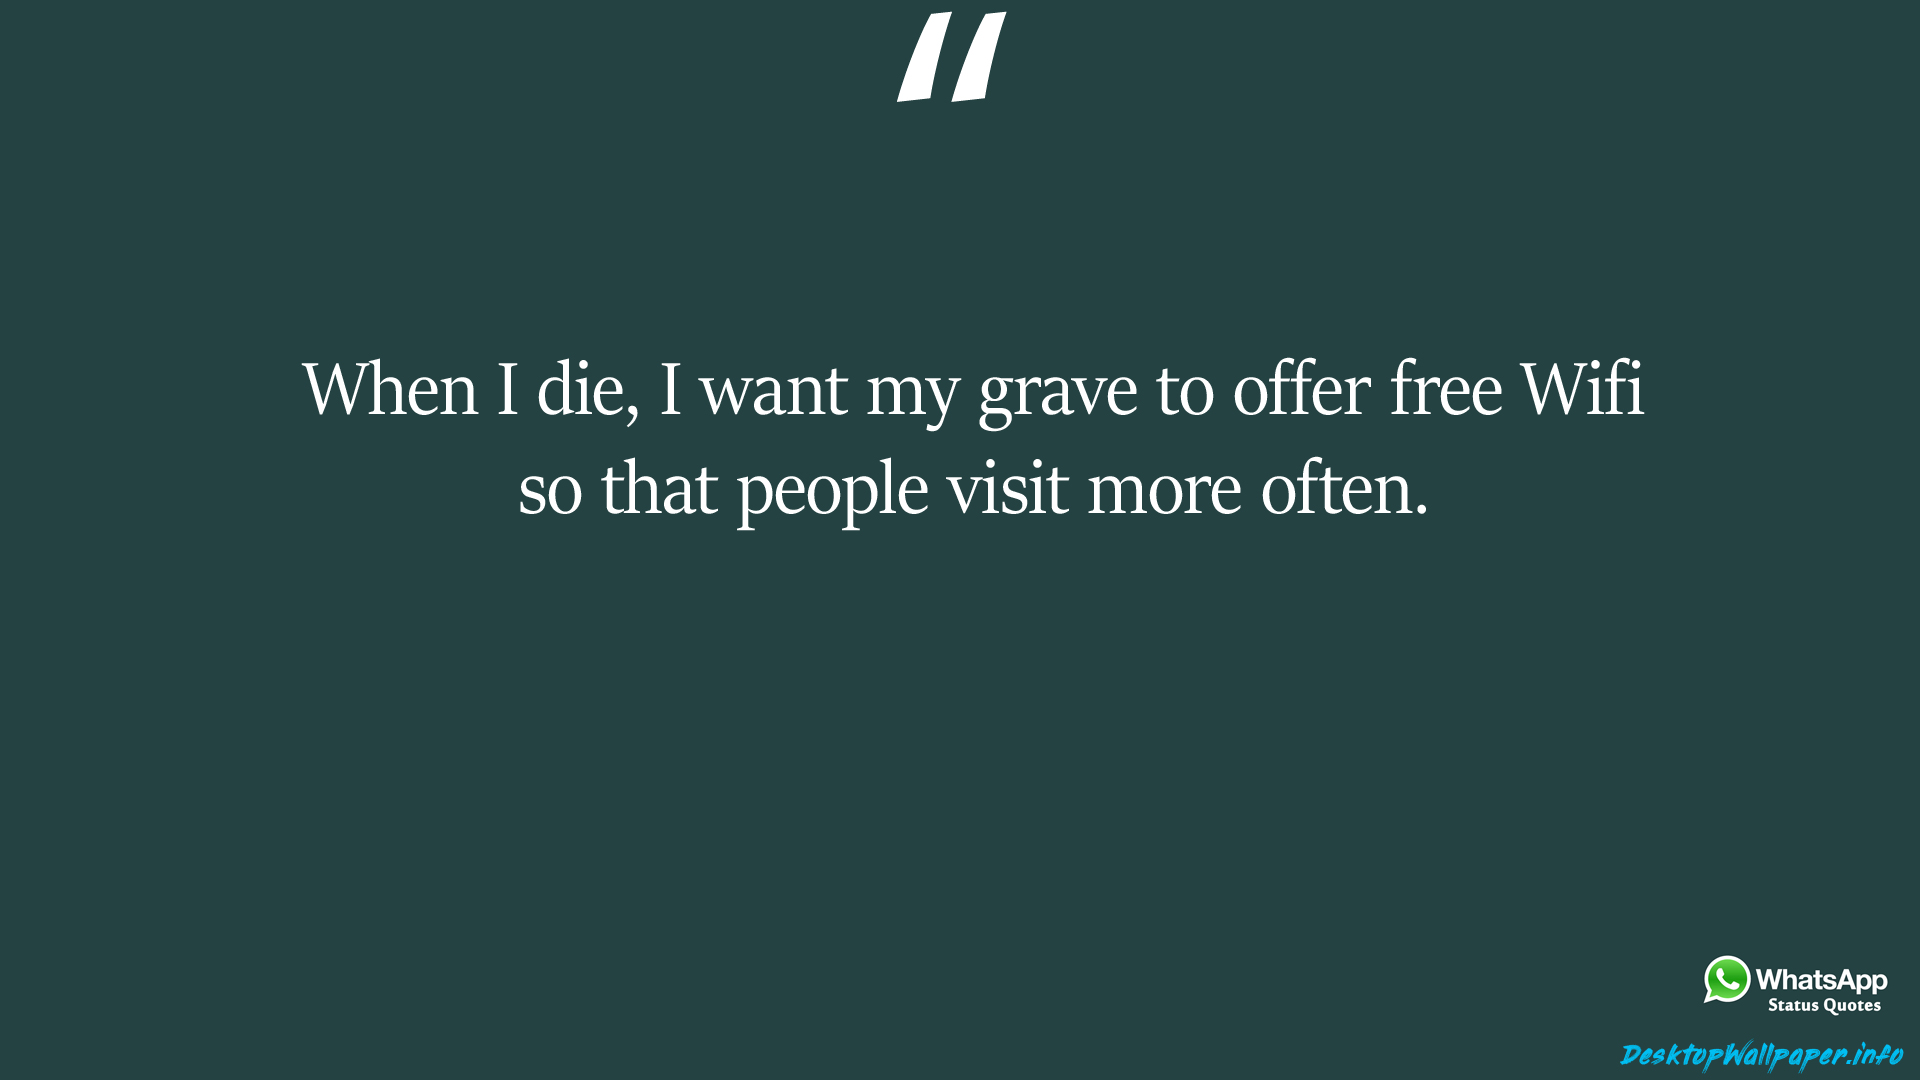 When I die I want my grave to offer free Wifi